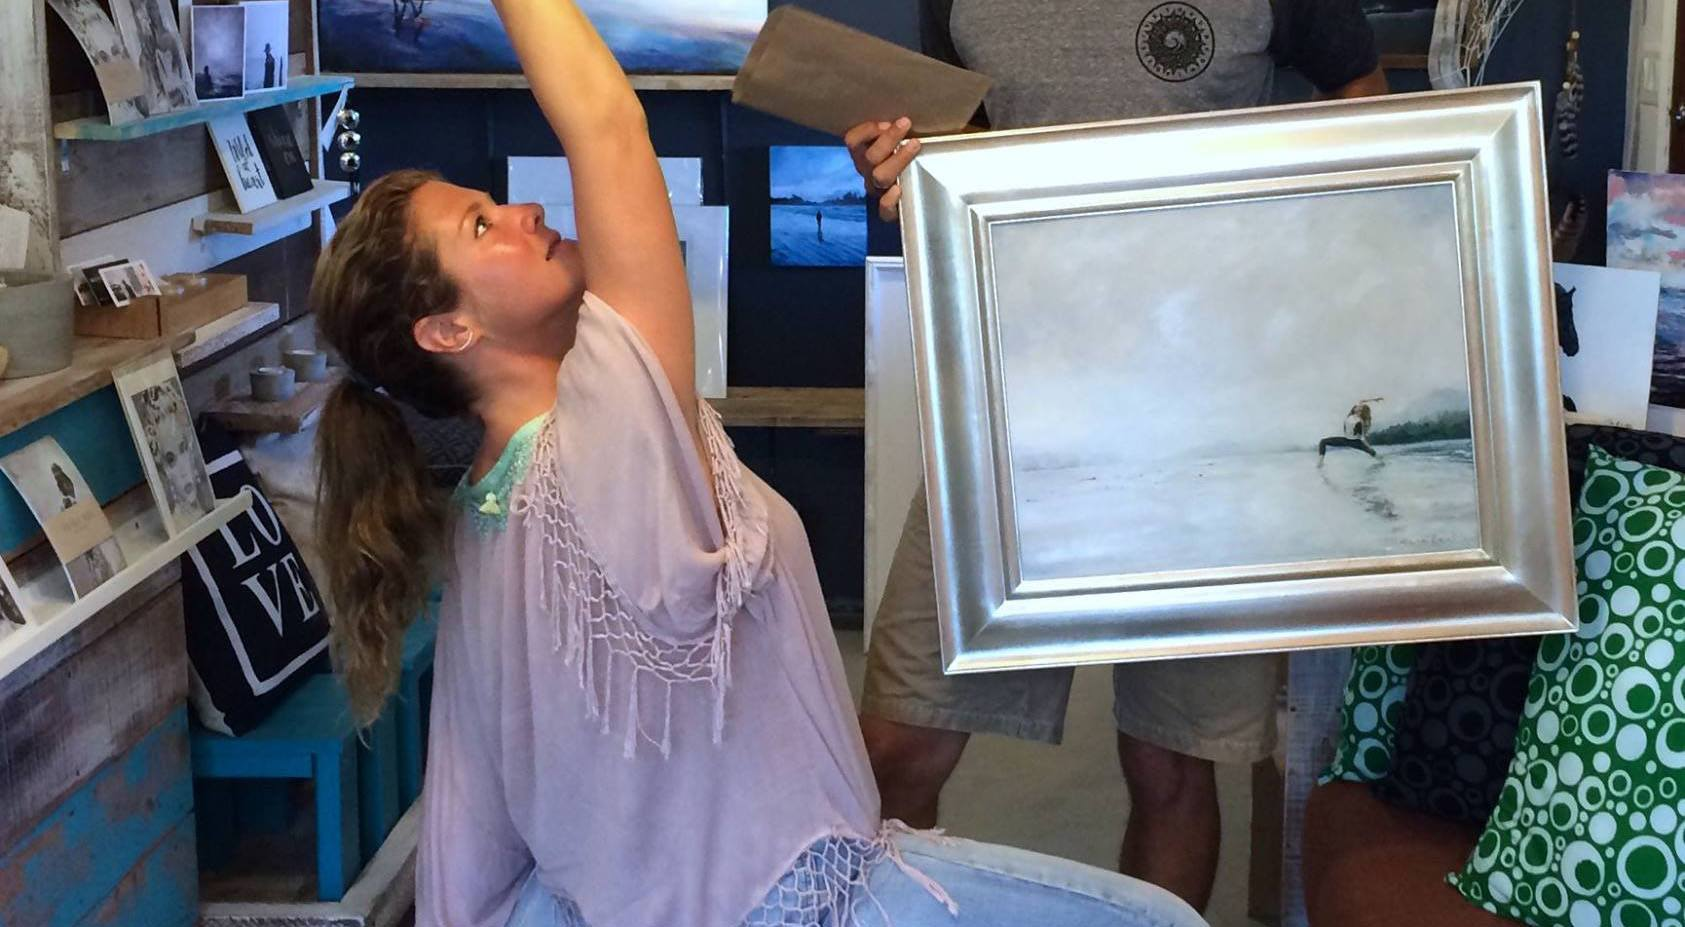 Sophie gregoire trudeau and justin trudeau with the painting of her doing yoga on the beach deanna lankin facebook lead